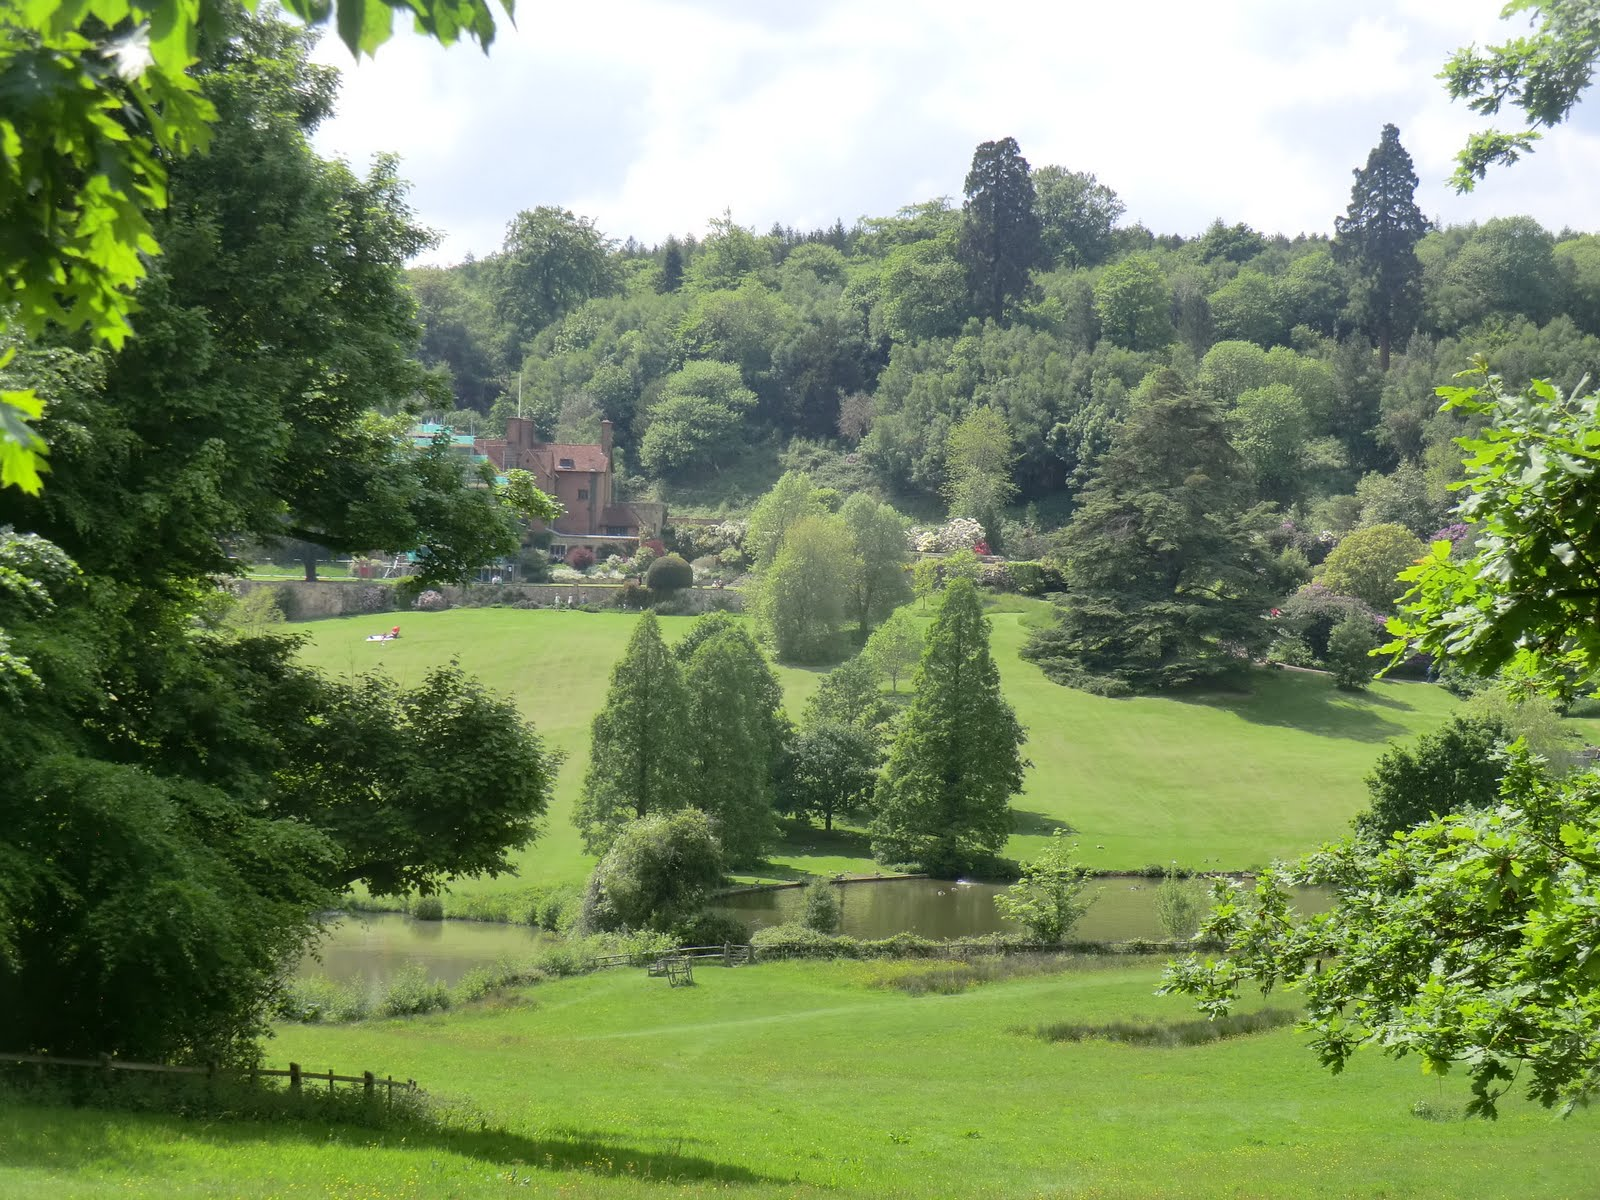 CIMG4380 View of Chartwell from the Woodland Walk